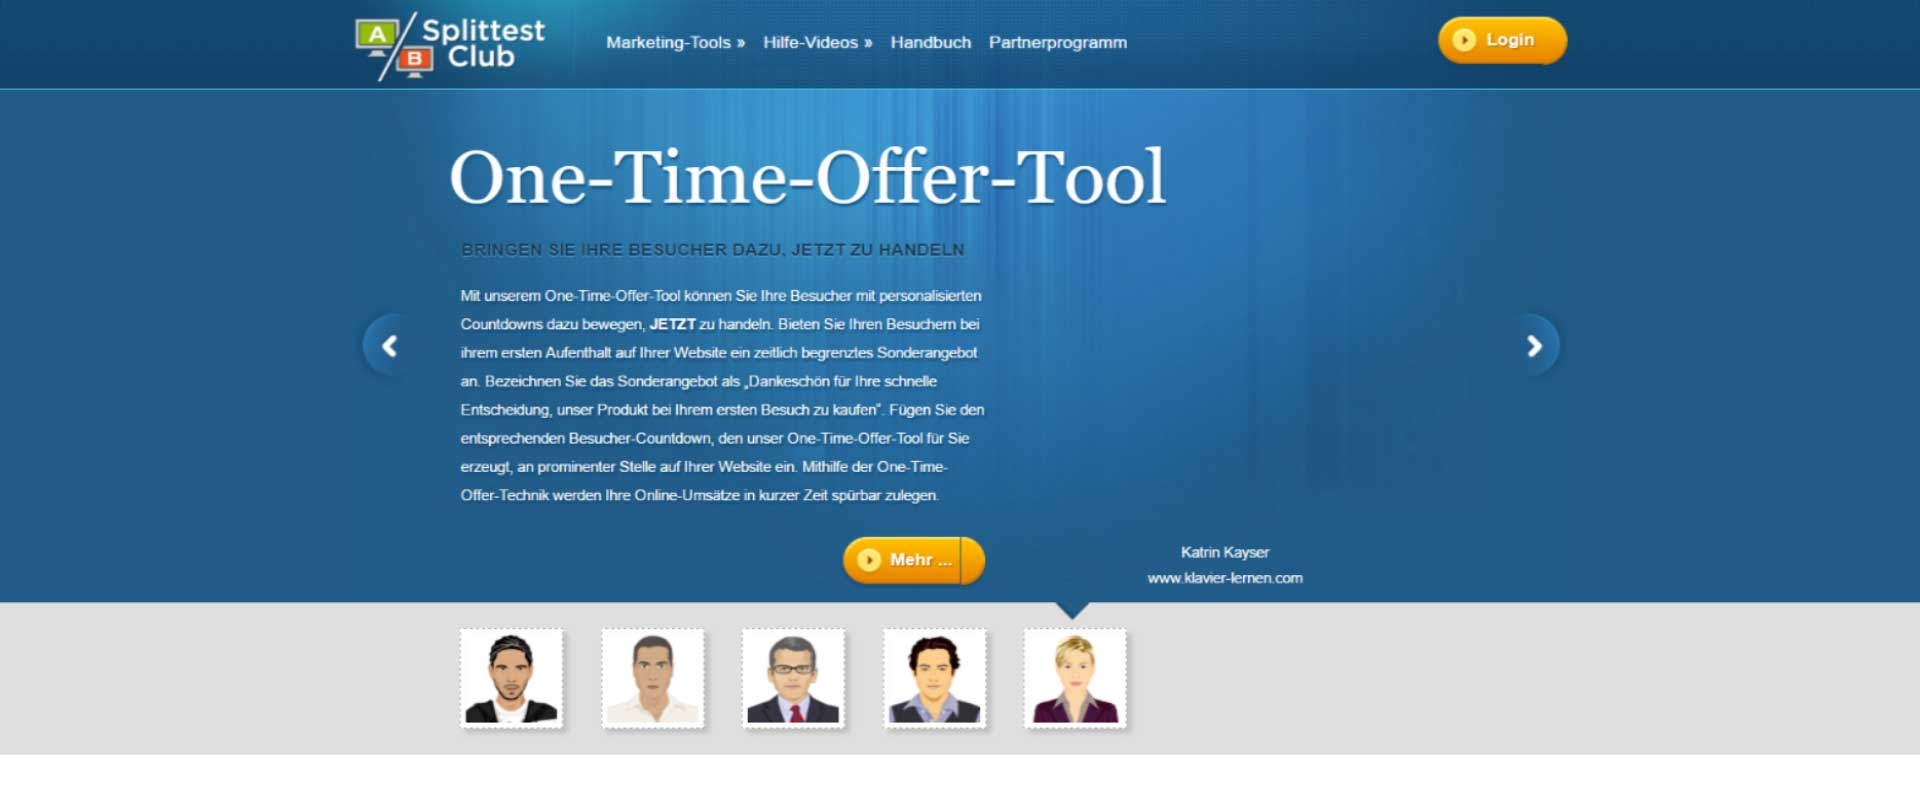 Das-One-Time-Offer-Tool